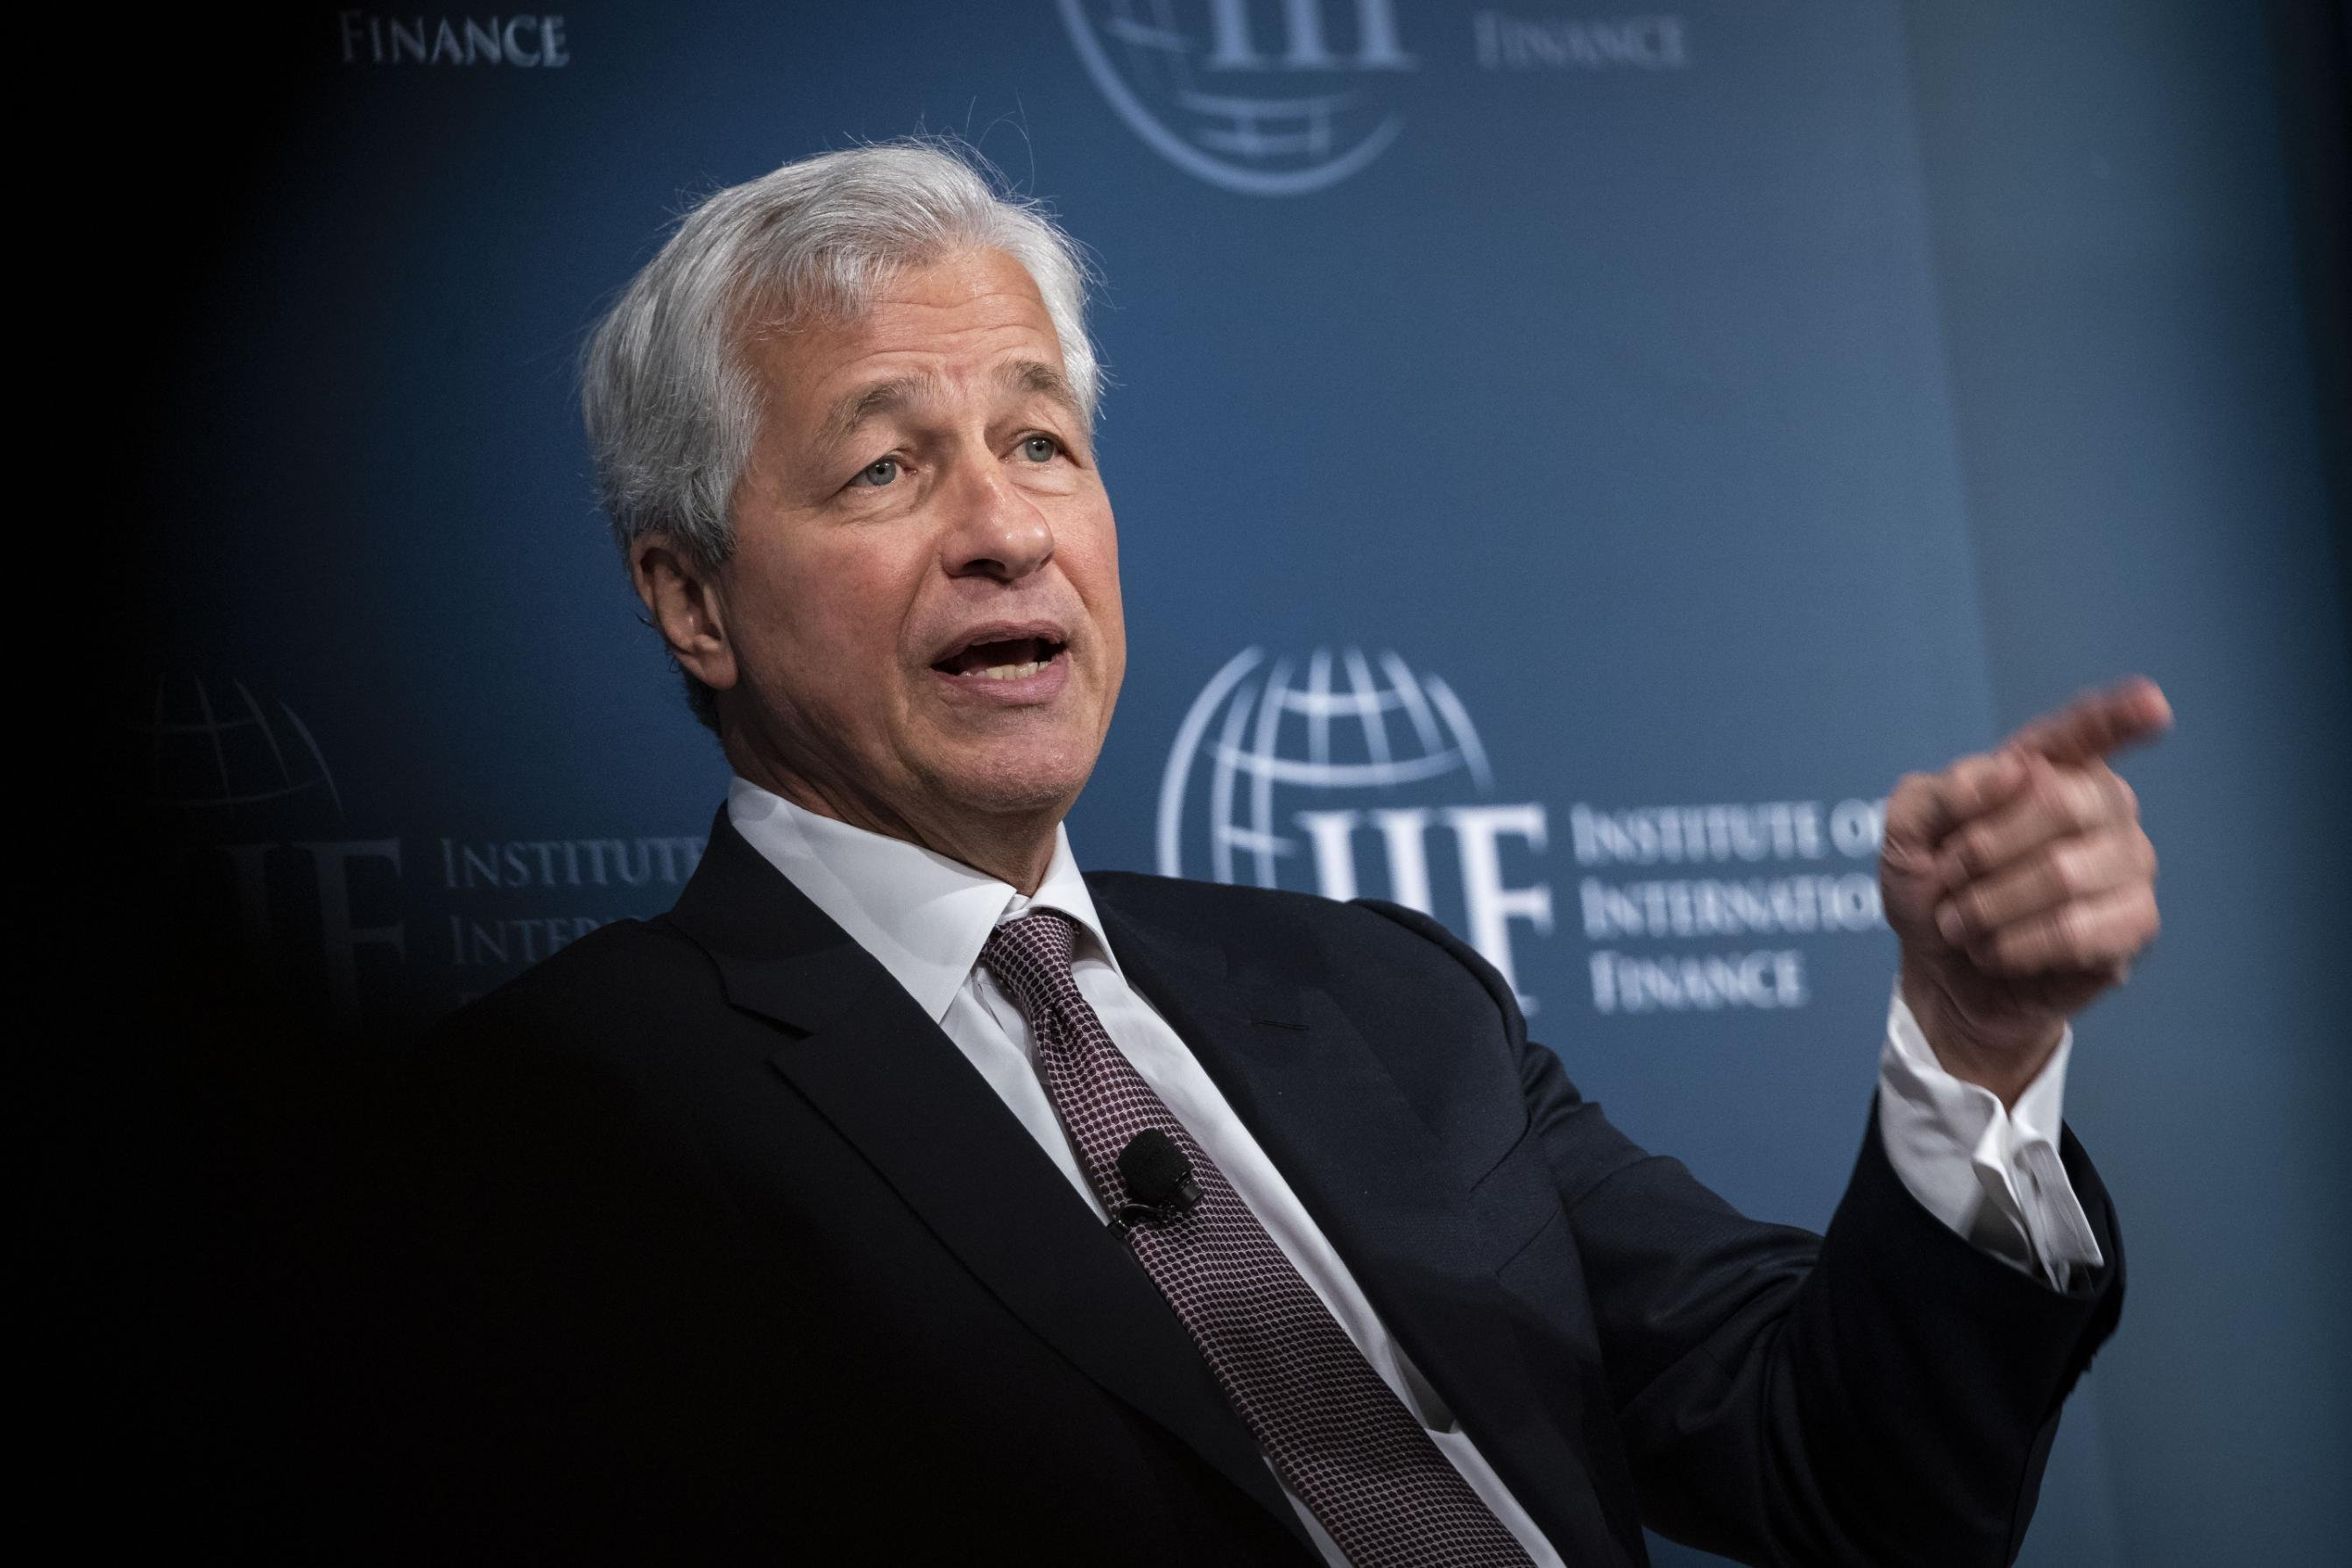 Jamie Dimon says Libra will never happen, and he wishes he could take JPMorgan private